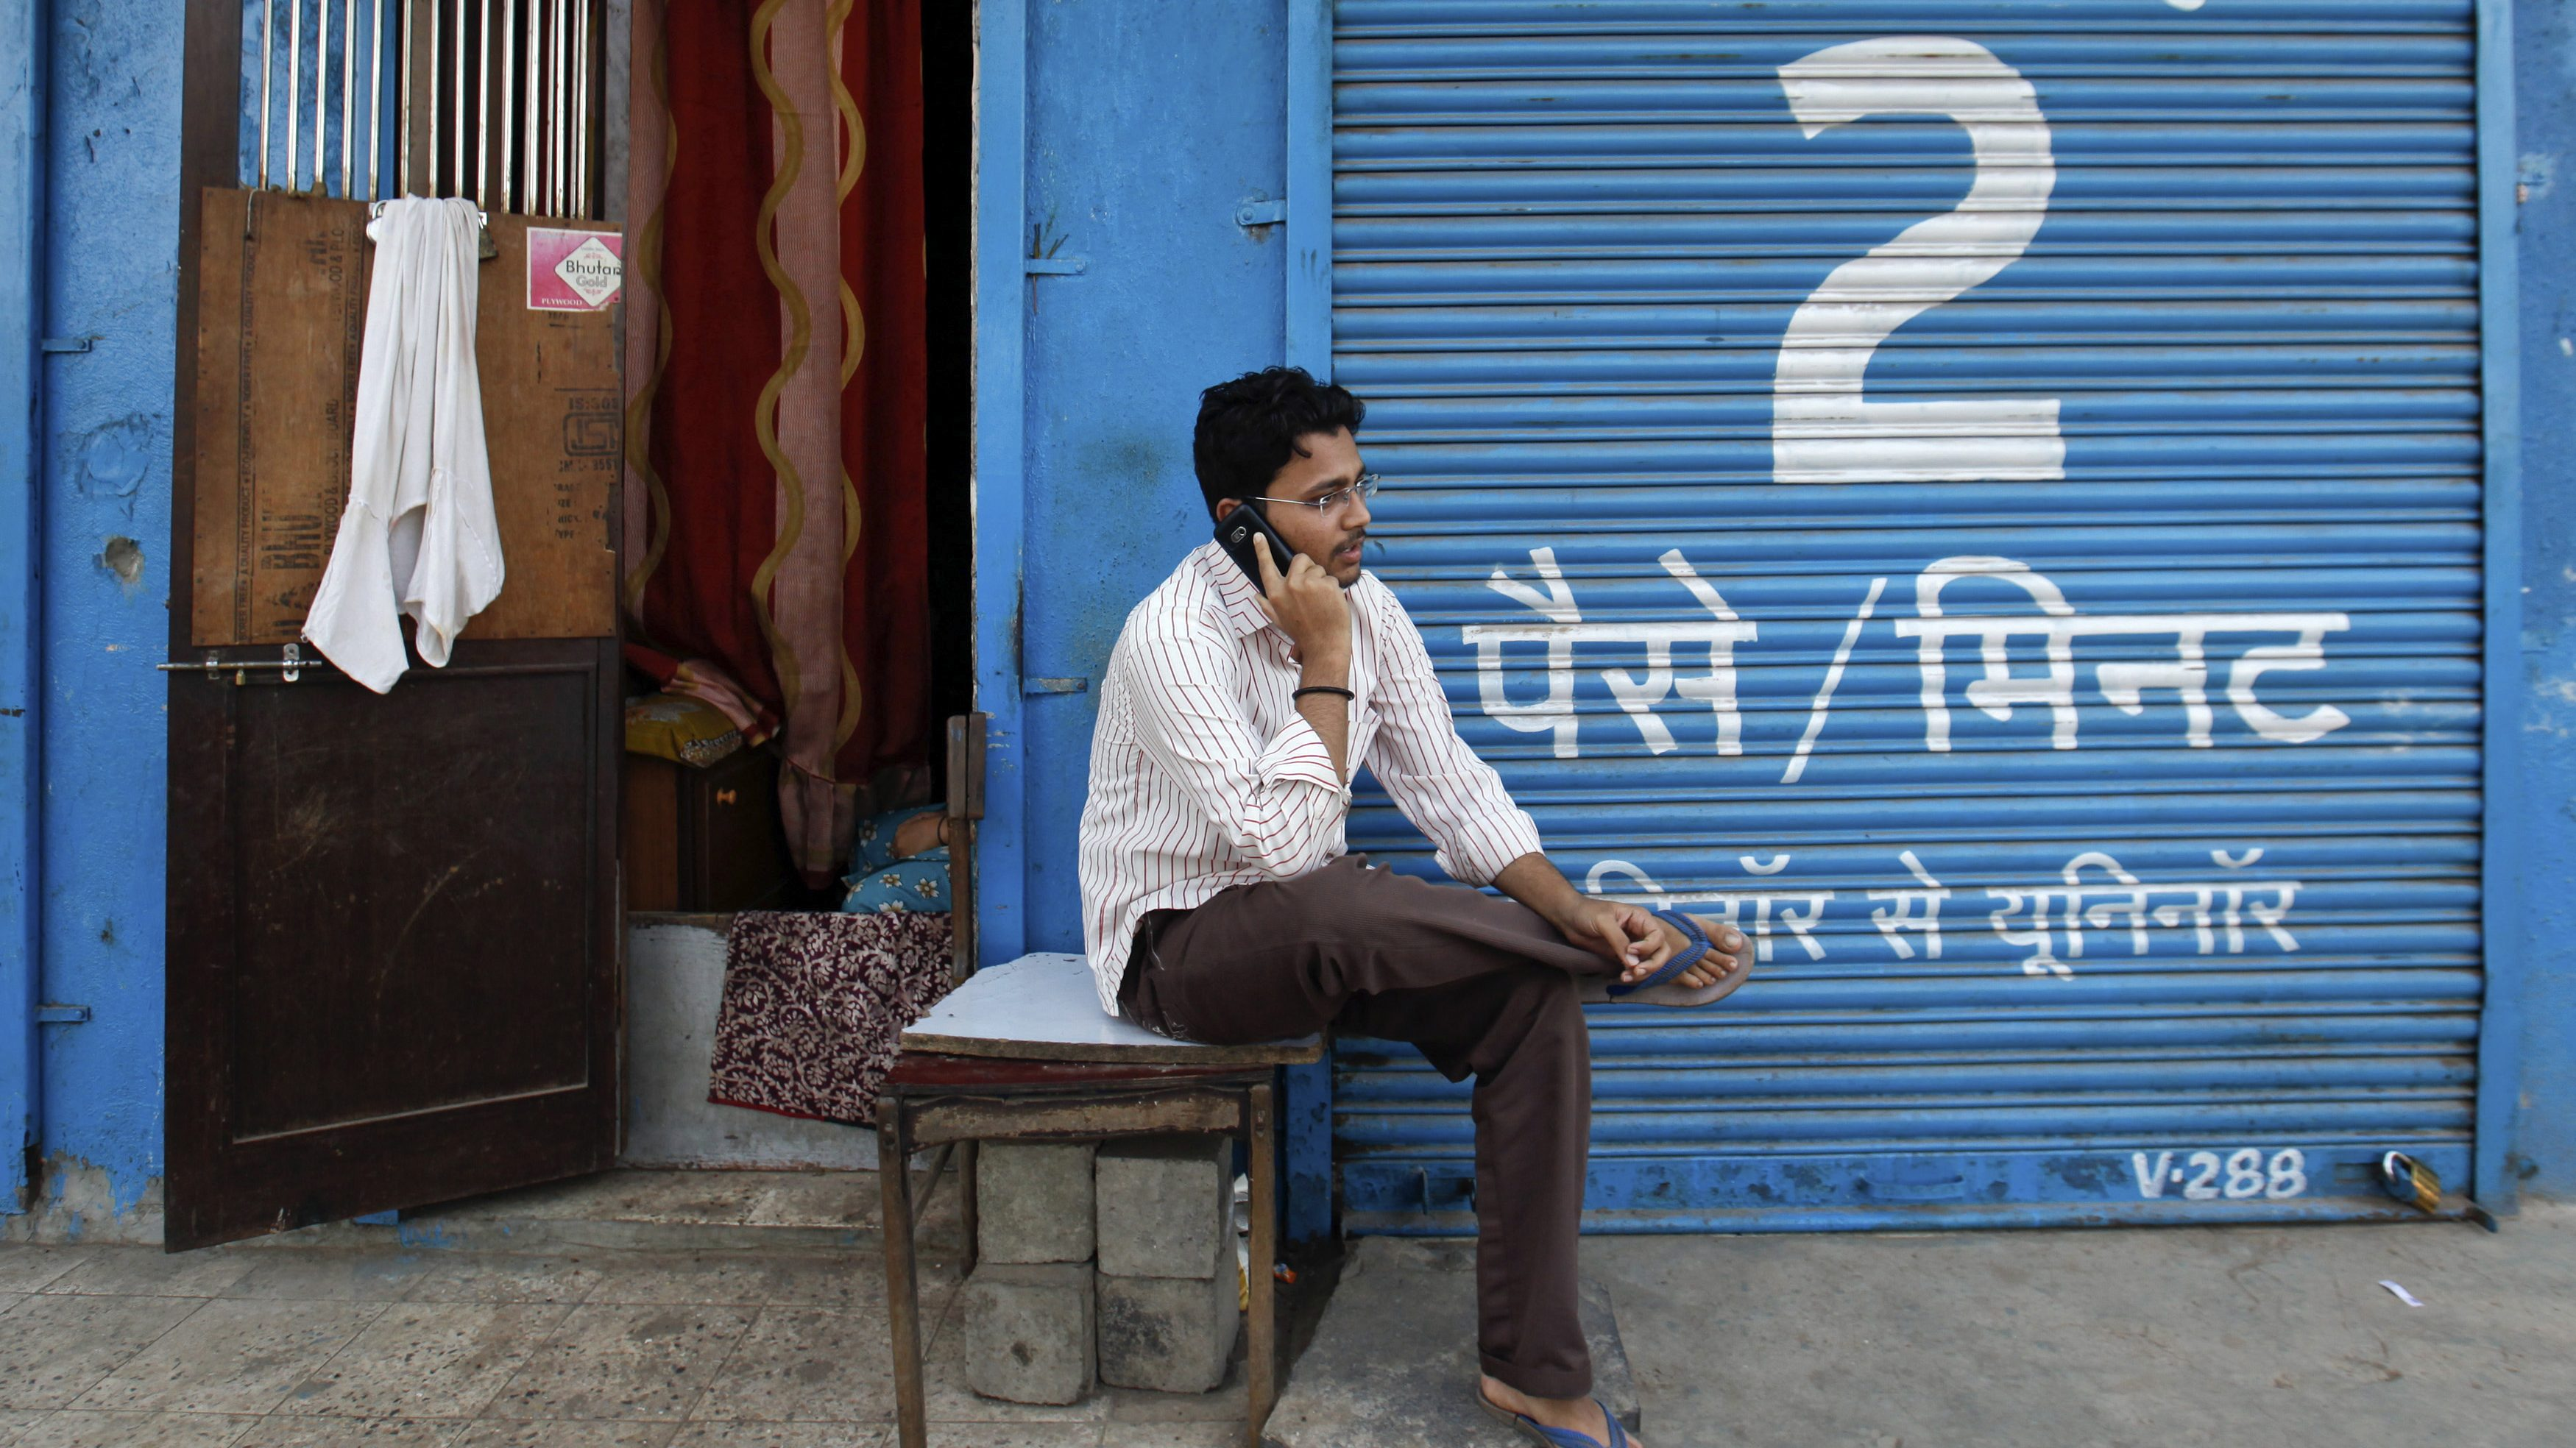 A man speaks on a mobile phone in front of a closed shop displaying an advertisement for Uninor on its shutters in Mumbai February 6, 2012. Norway's Telenor ASA plans to fight an order by India's Supreme Court to cancel 22 telecoms licences held by its Indian joint venture, but has not ruled out abandoning the country altogether, the head of the company's Asian operations said. Telenor's joint venture with Unitech, which operates under the Uninor brand, has been among the most aggressive of India's newer telecoms companies.